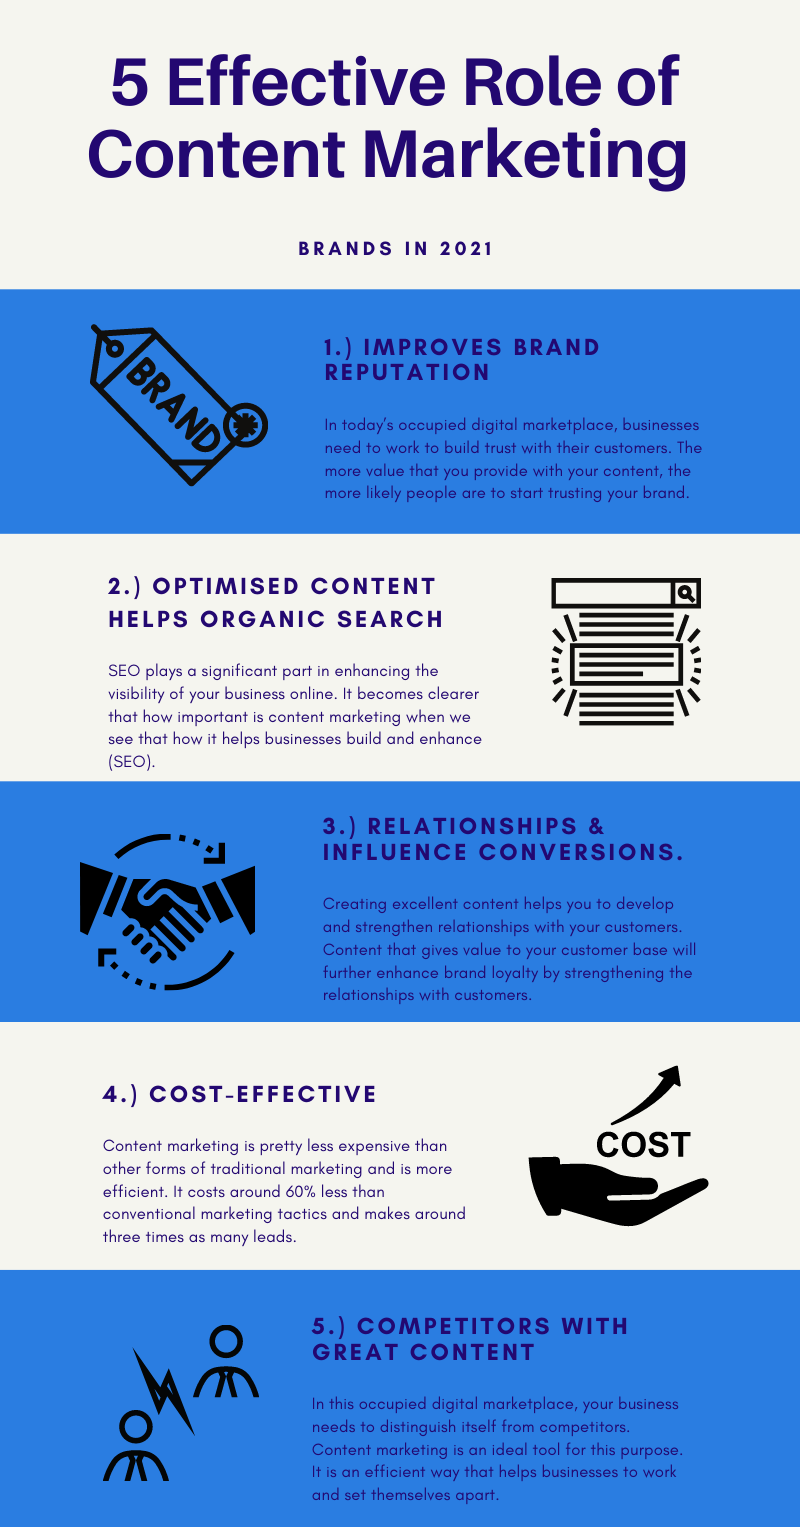 role of content marketing for brands infographic